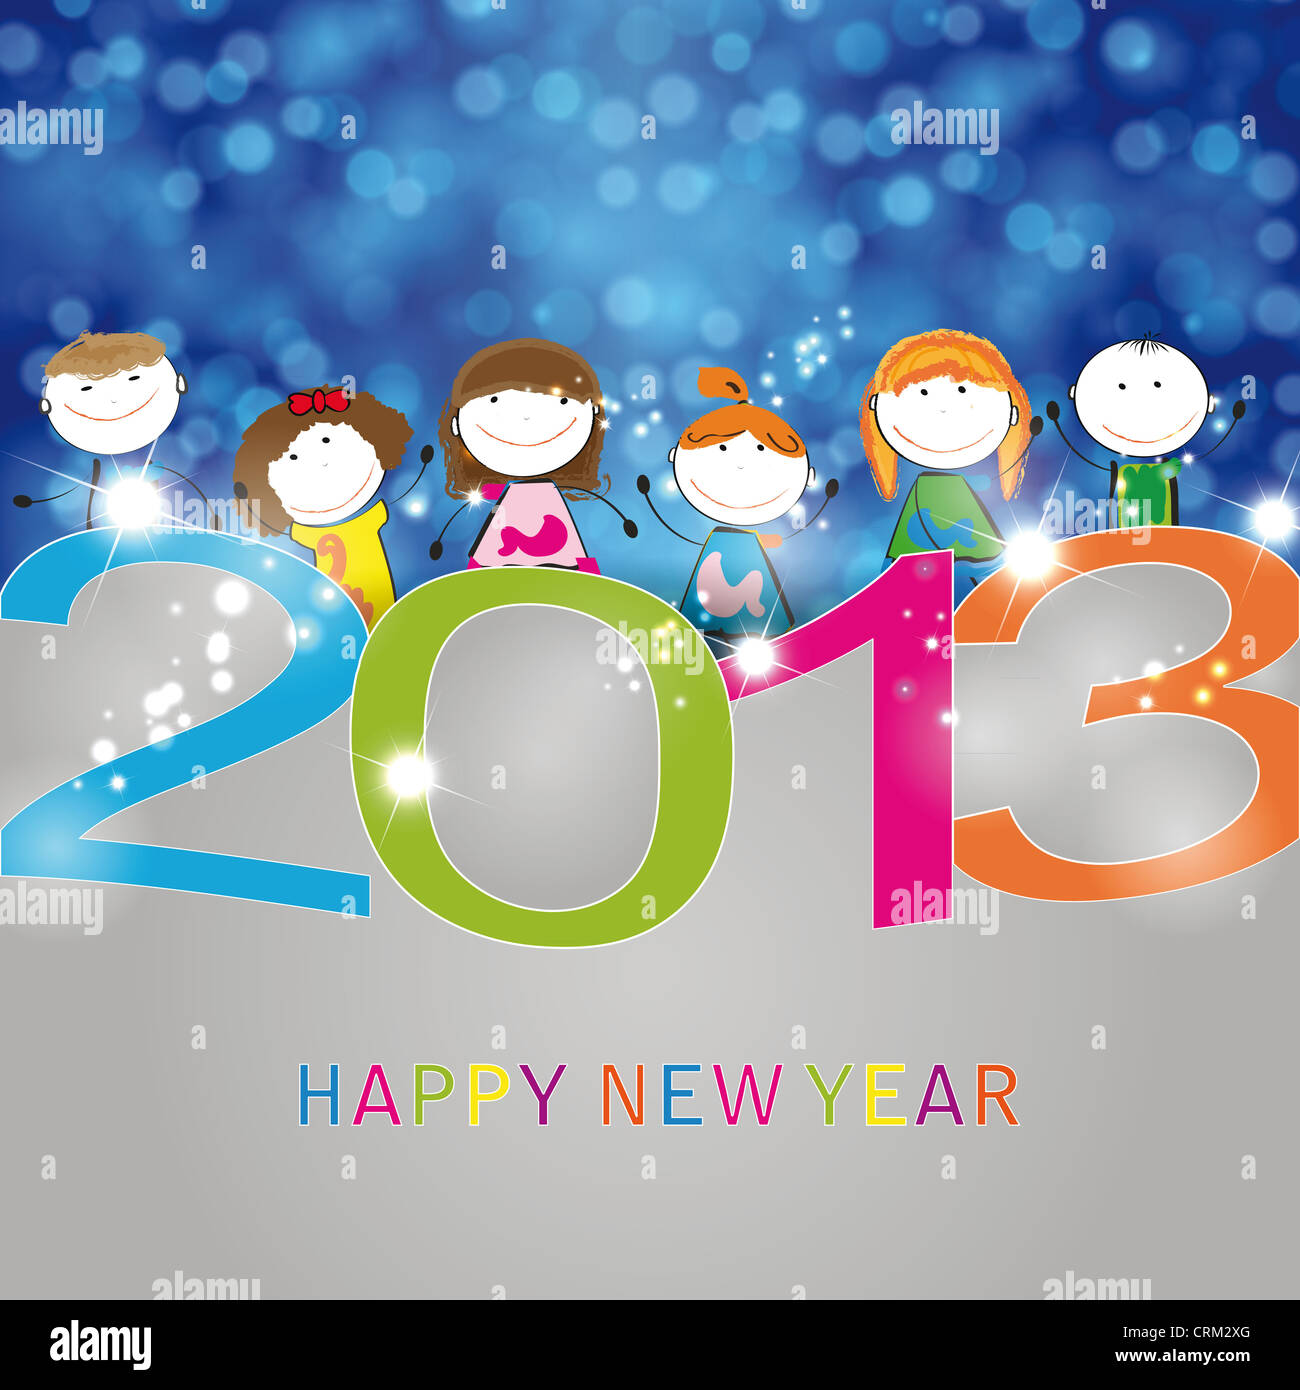 Concept card on New Year 2013 with happy kids - Stock Image